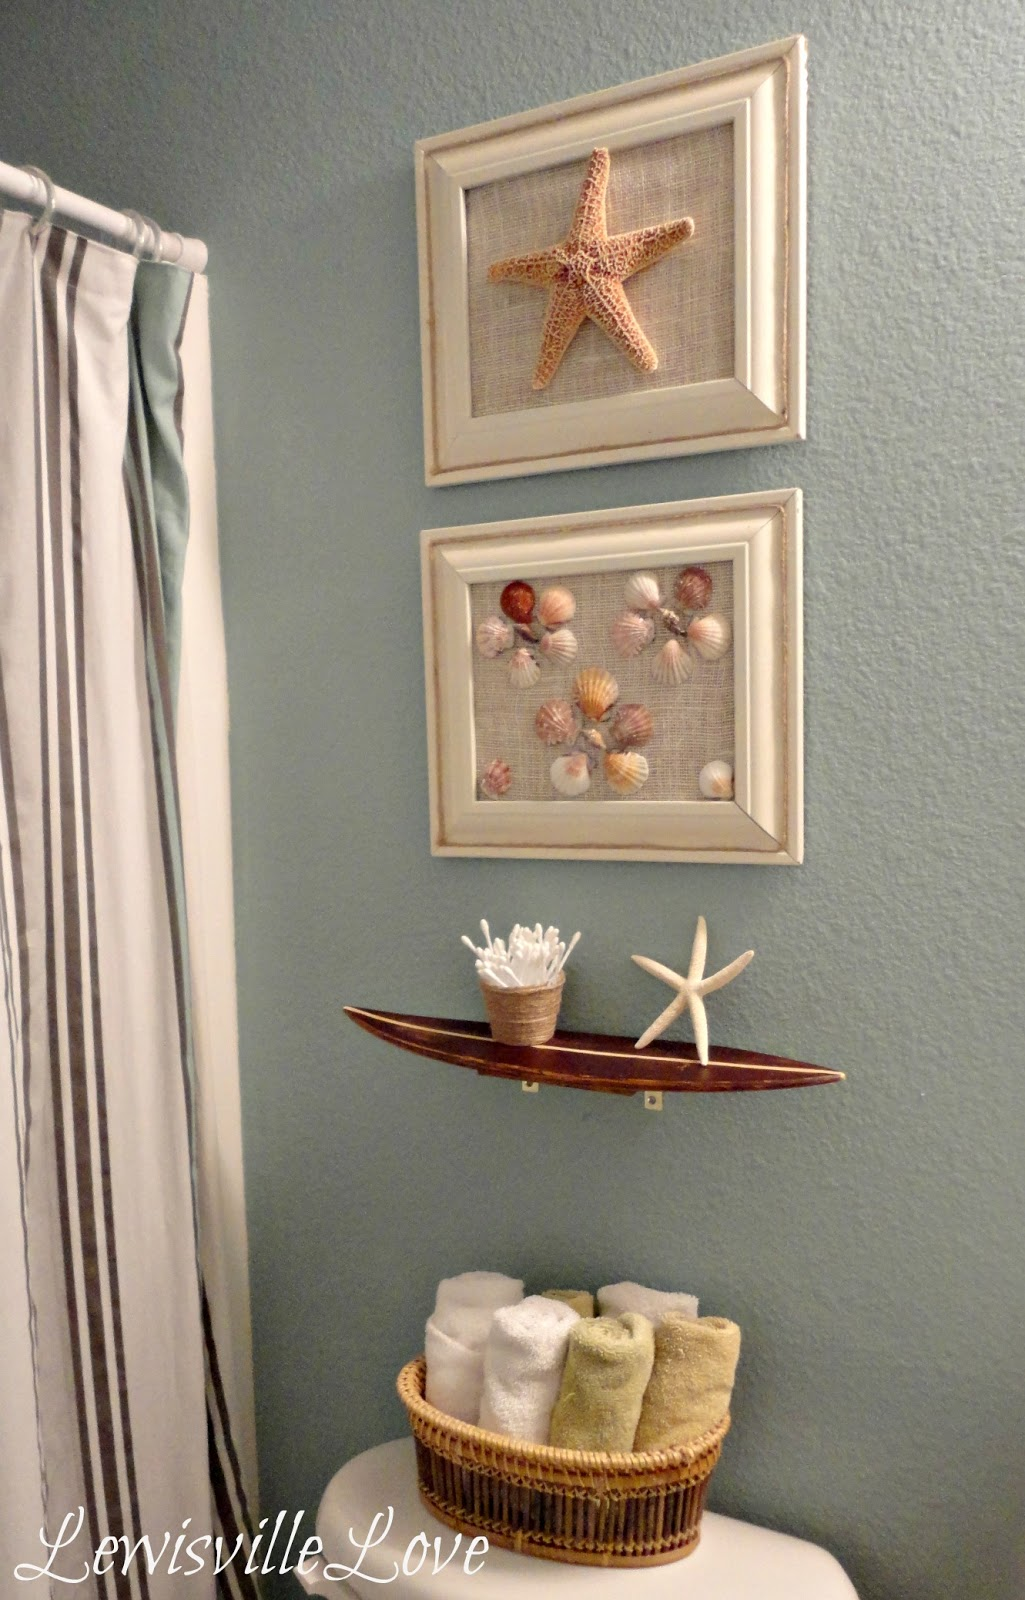 Lewisville love beach theme bathroom reveal - Images of bathroom decoration ...